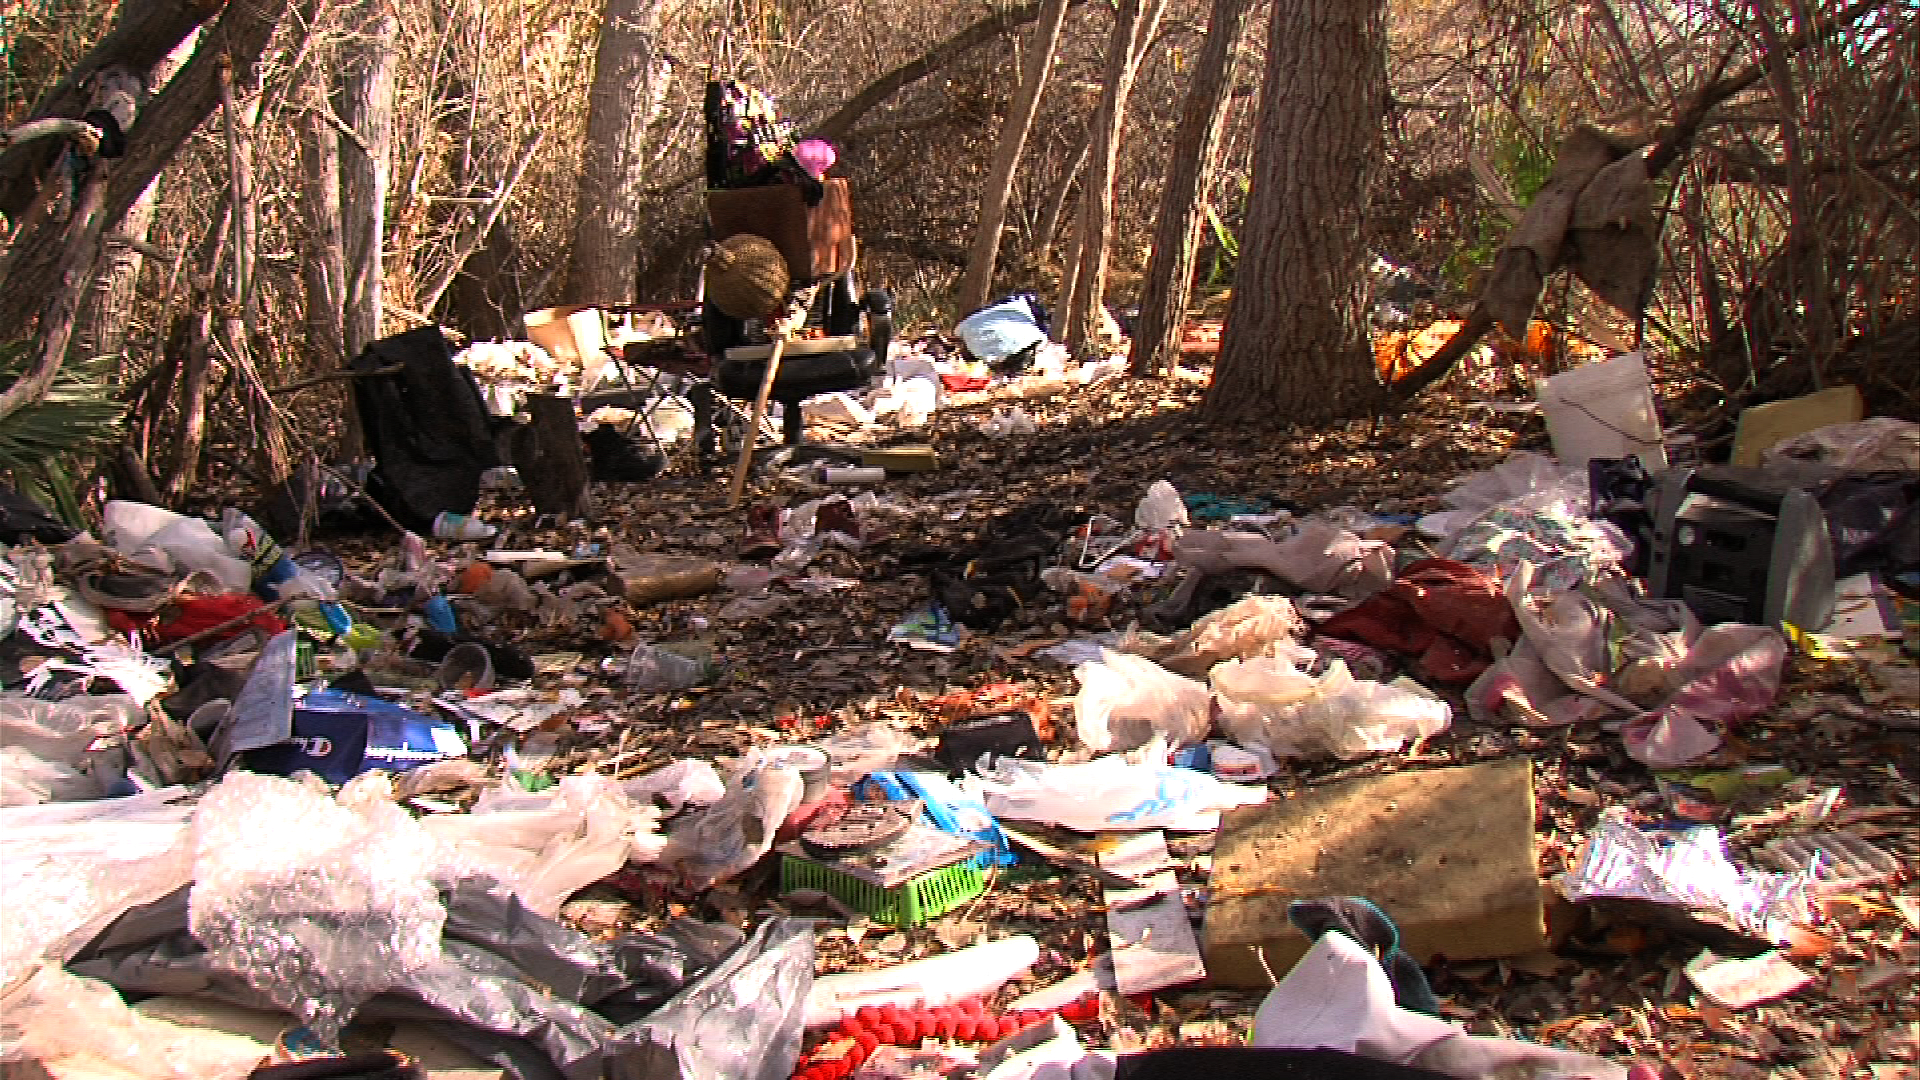 San Diego River Restoration Involves Clearing Homeless